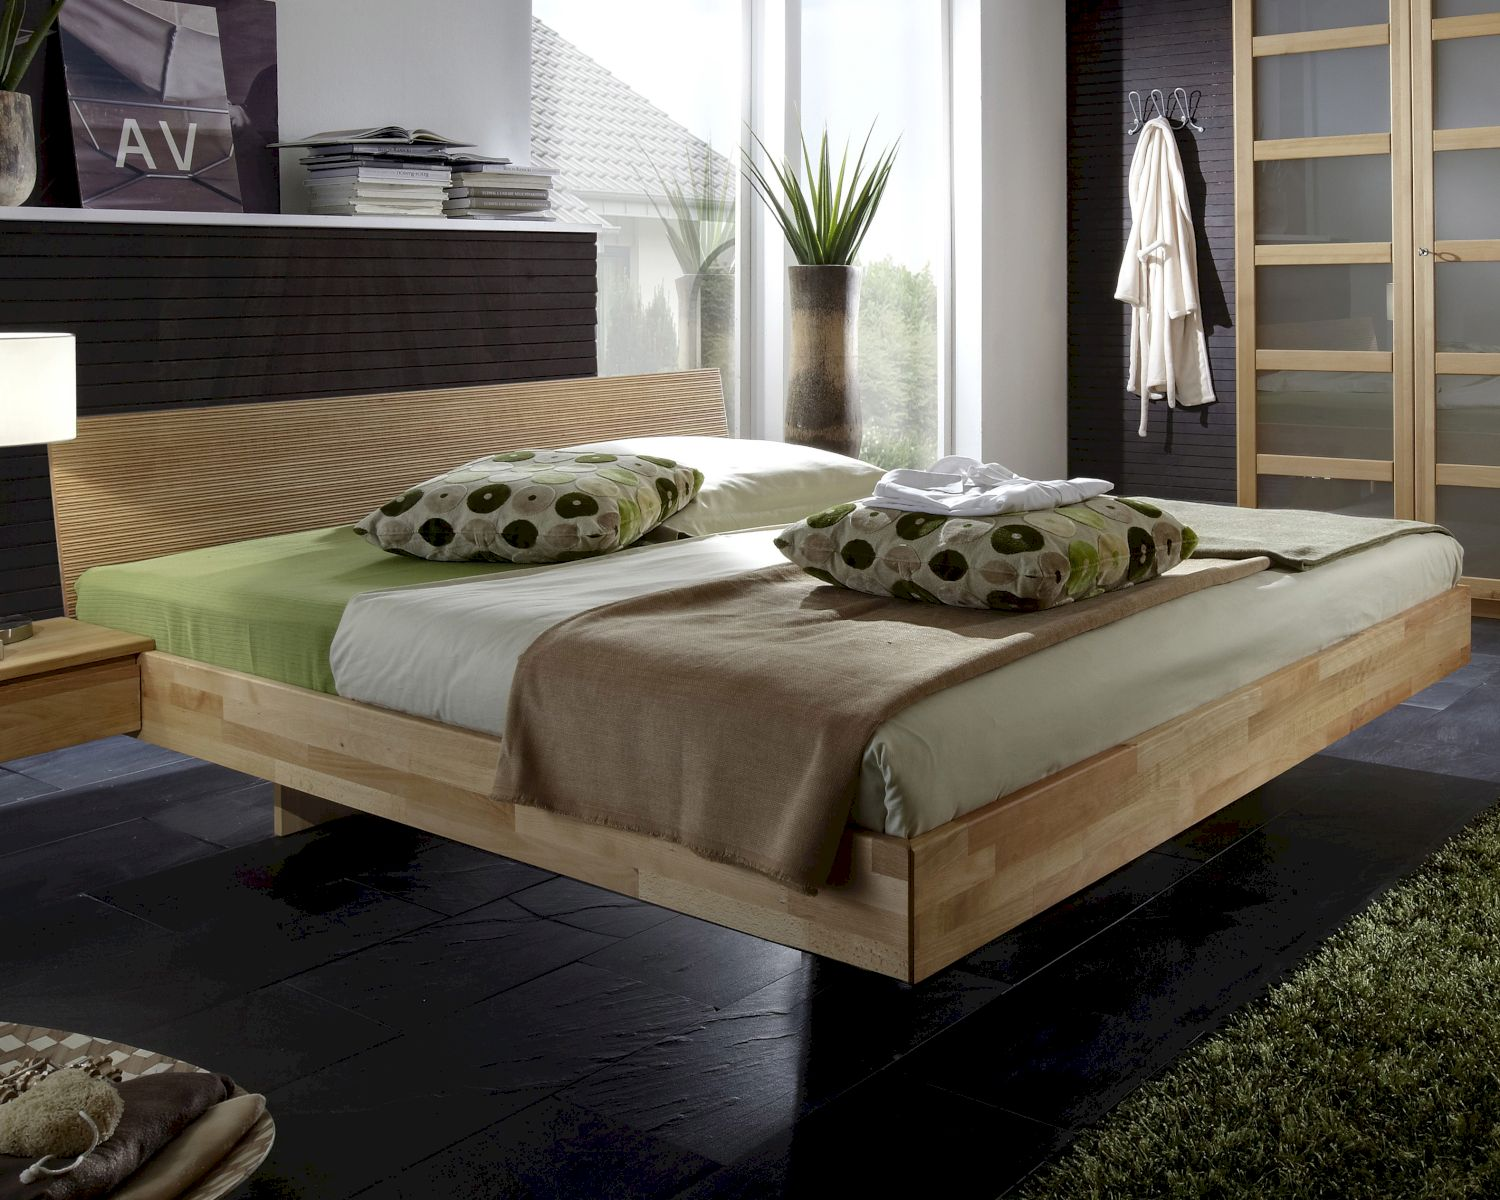 massivholz bett gamma schwebebett kaufen. Black Bedroom Furniture Sets. Home Design Ideas